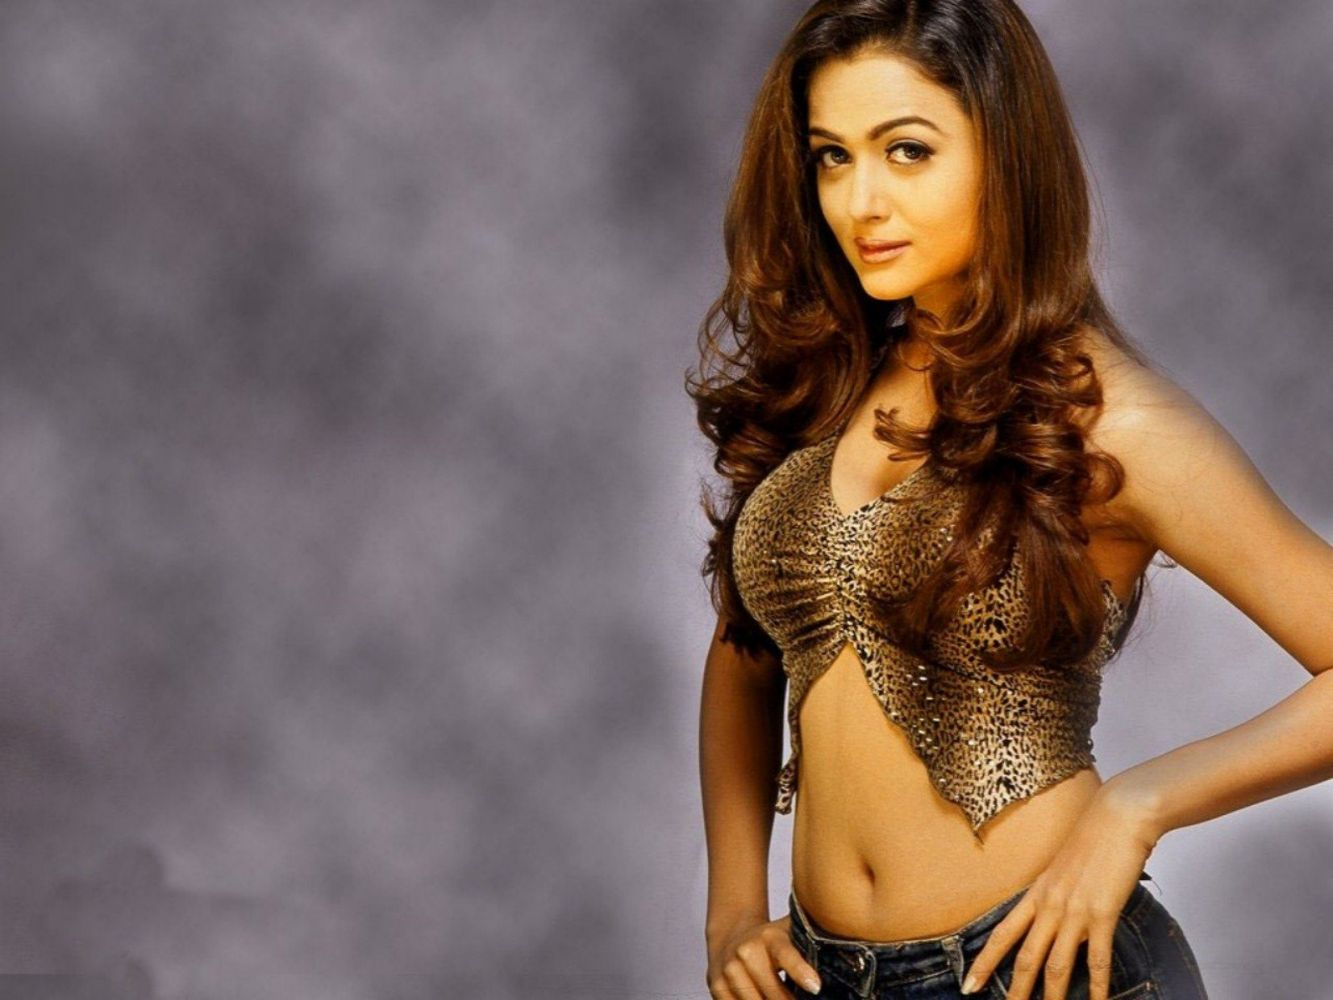 Bollywood Actress Naked Wallpaper With Free Nude Bollywood Actress